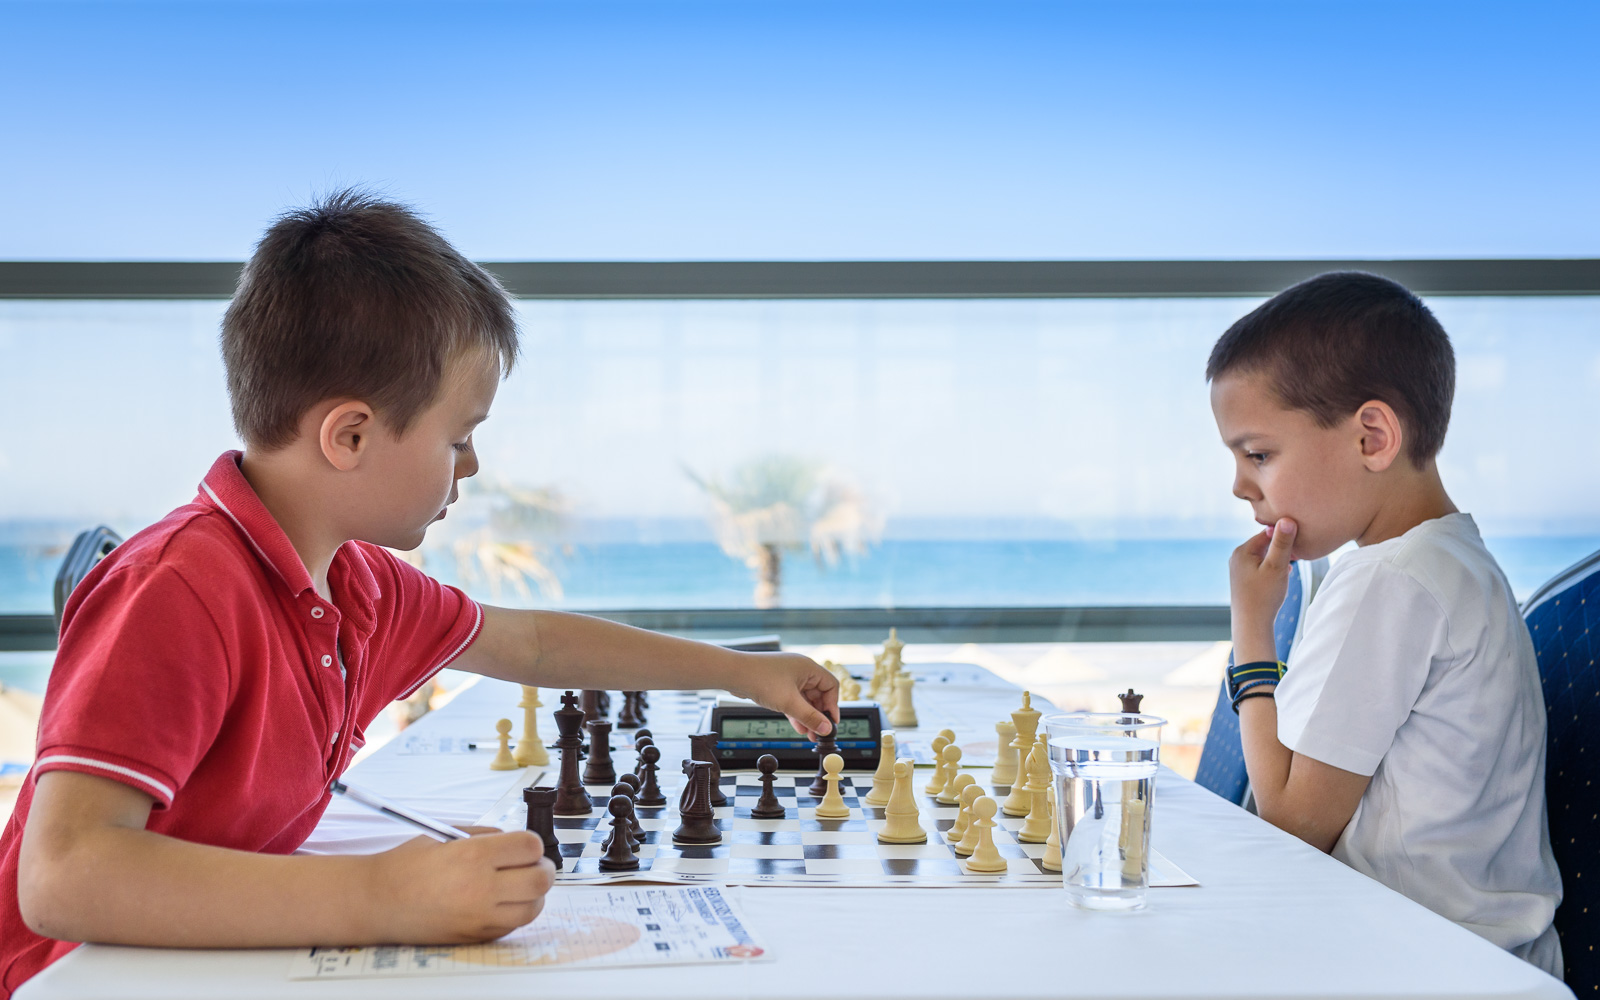 boys chess beach